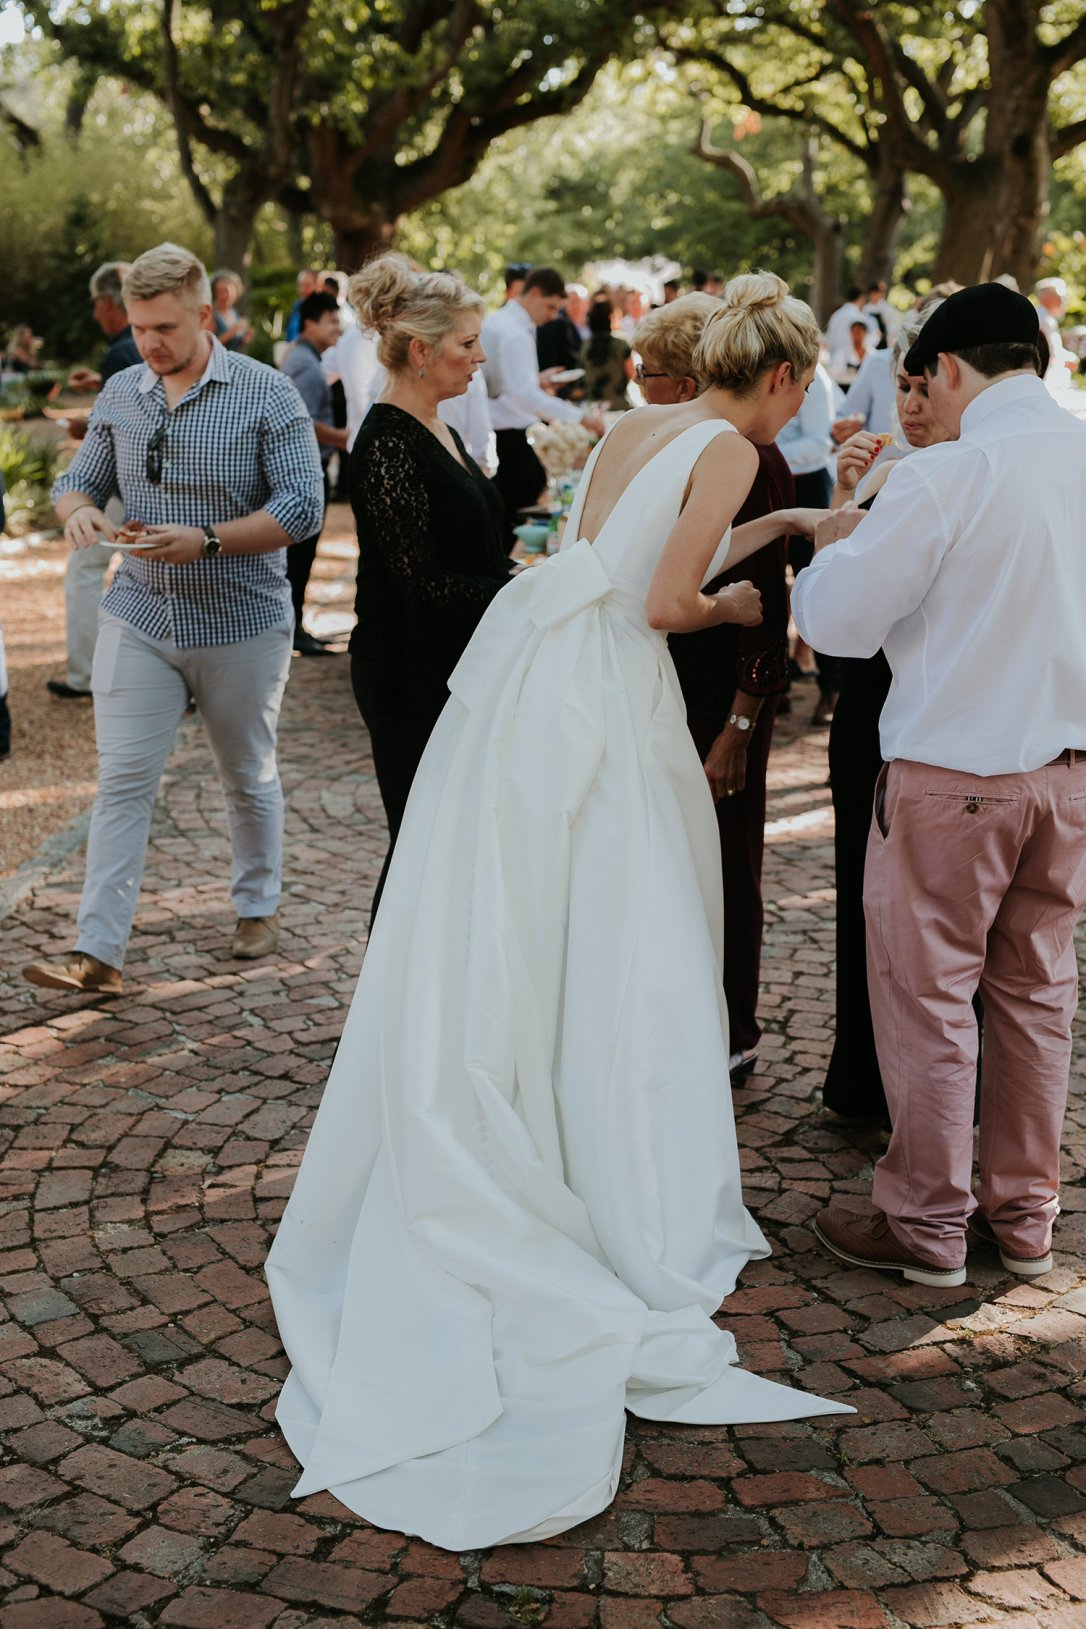 View More: http://dsmith.pass.us/mattdanellewedding2